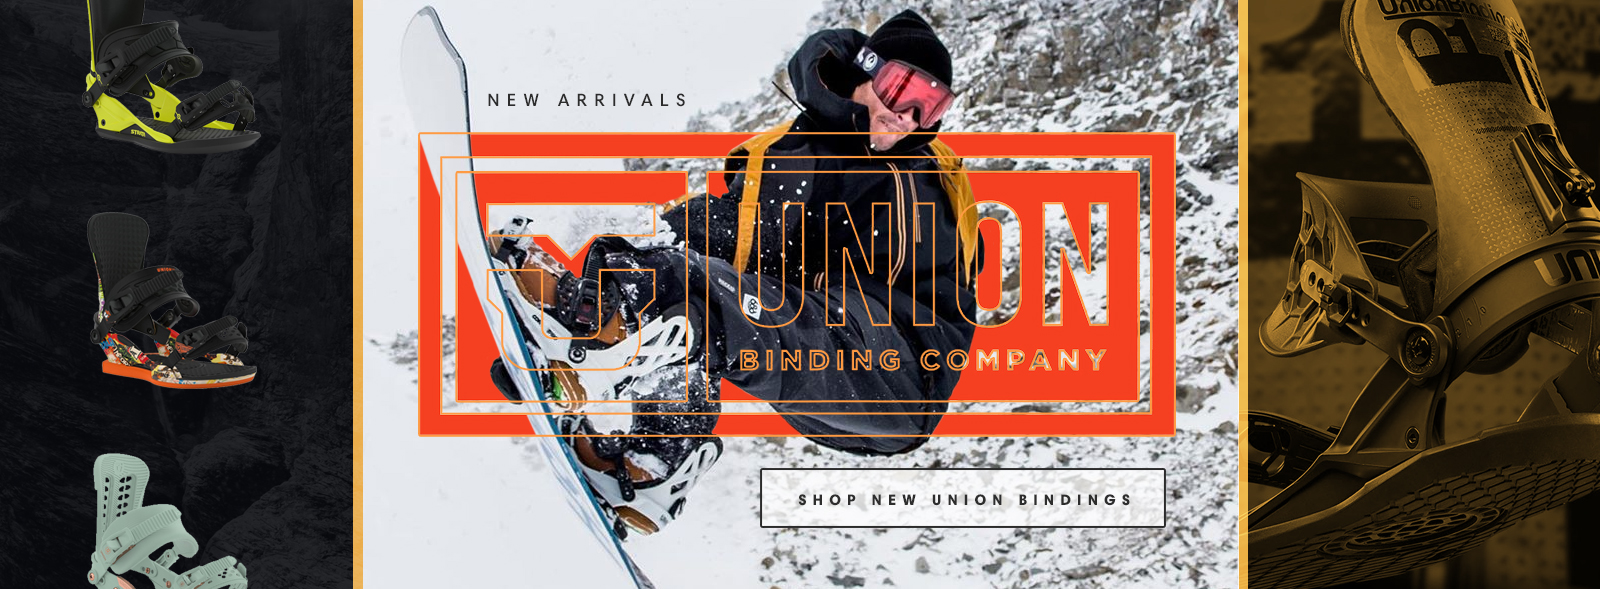 Union Binding Co. New arrivals